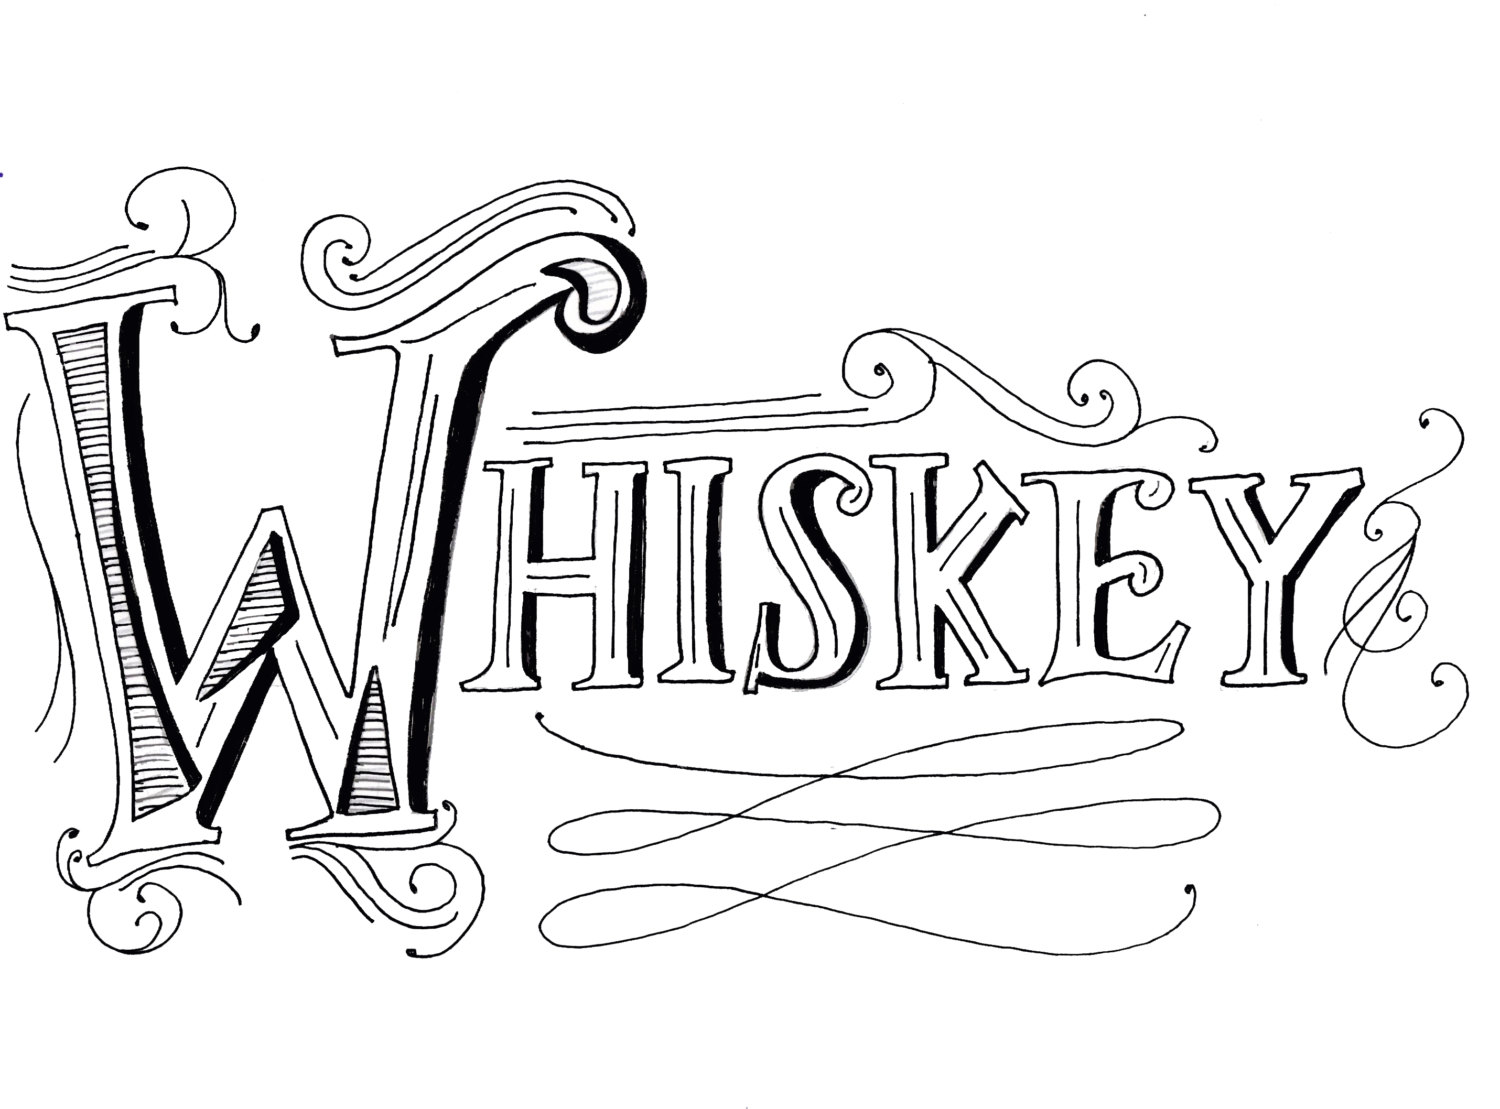 Whiskey Drawing At Free For Personal Use Still Diagram 1500x1109 Dog Names Jameson Jack Booker Want Whisky